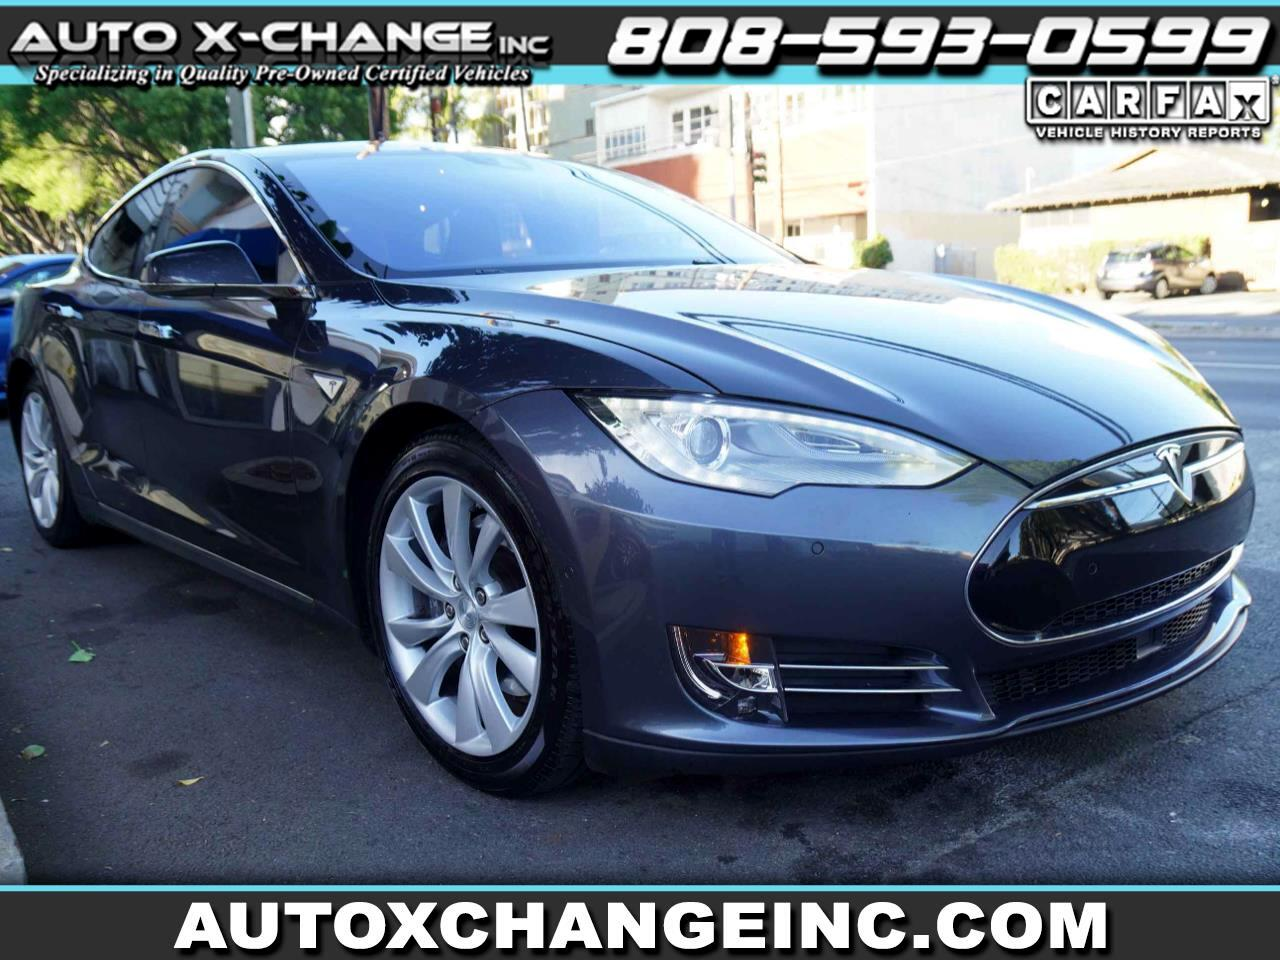 Tesla Model S 4dr Sdn RWD 85 kWh Battery 2015